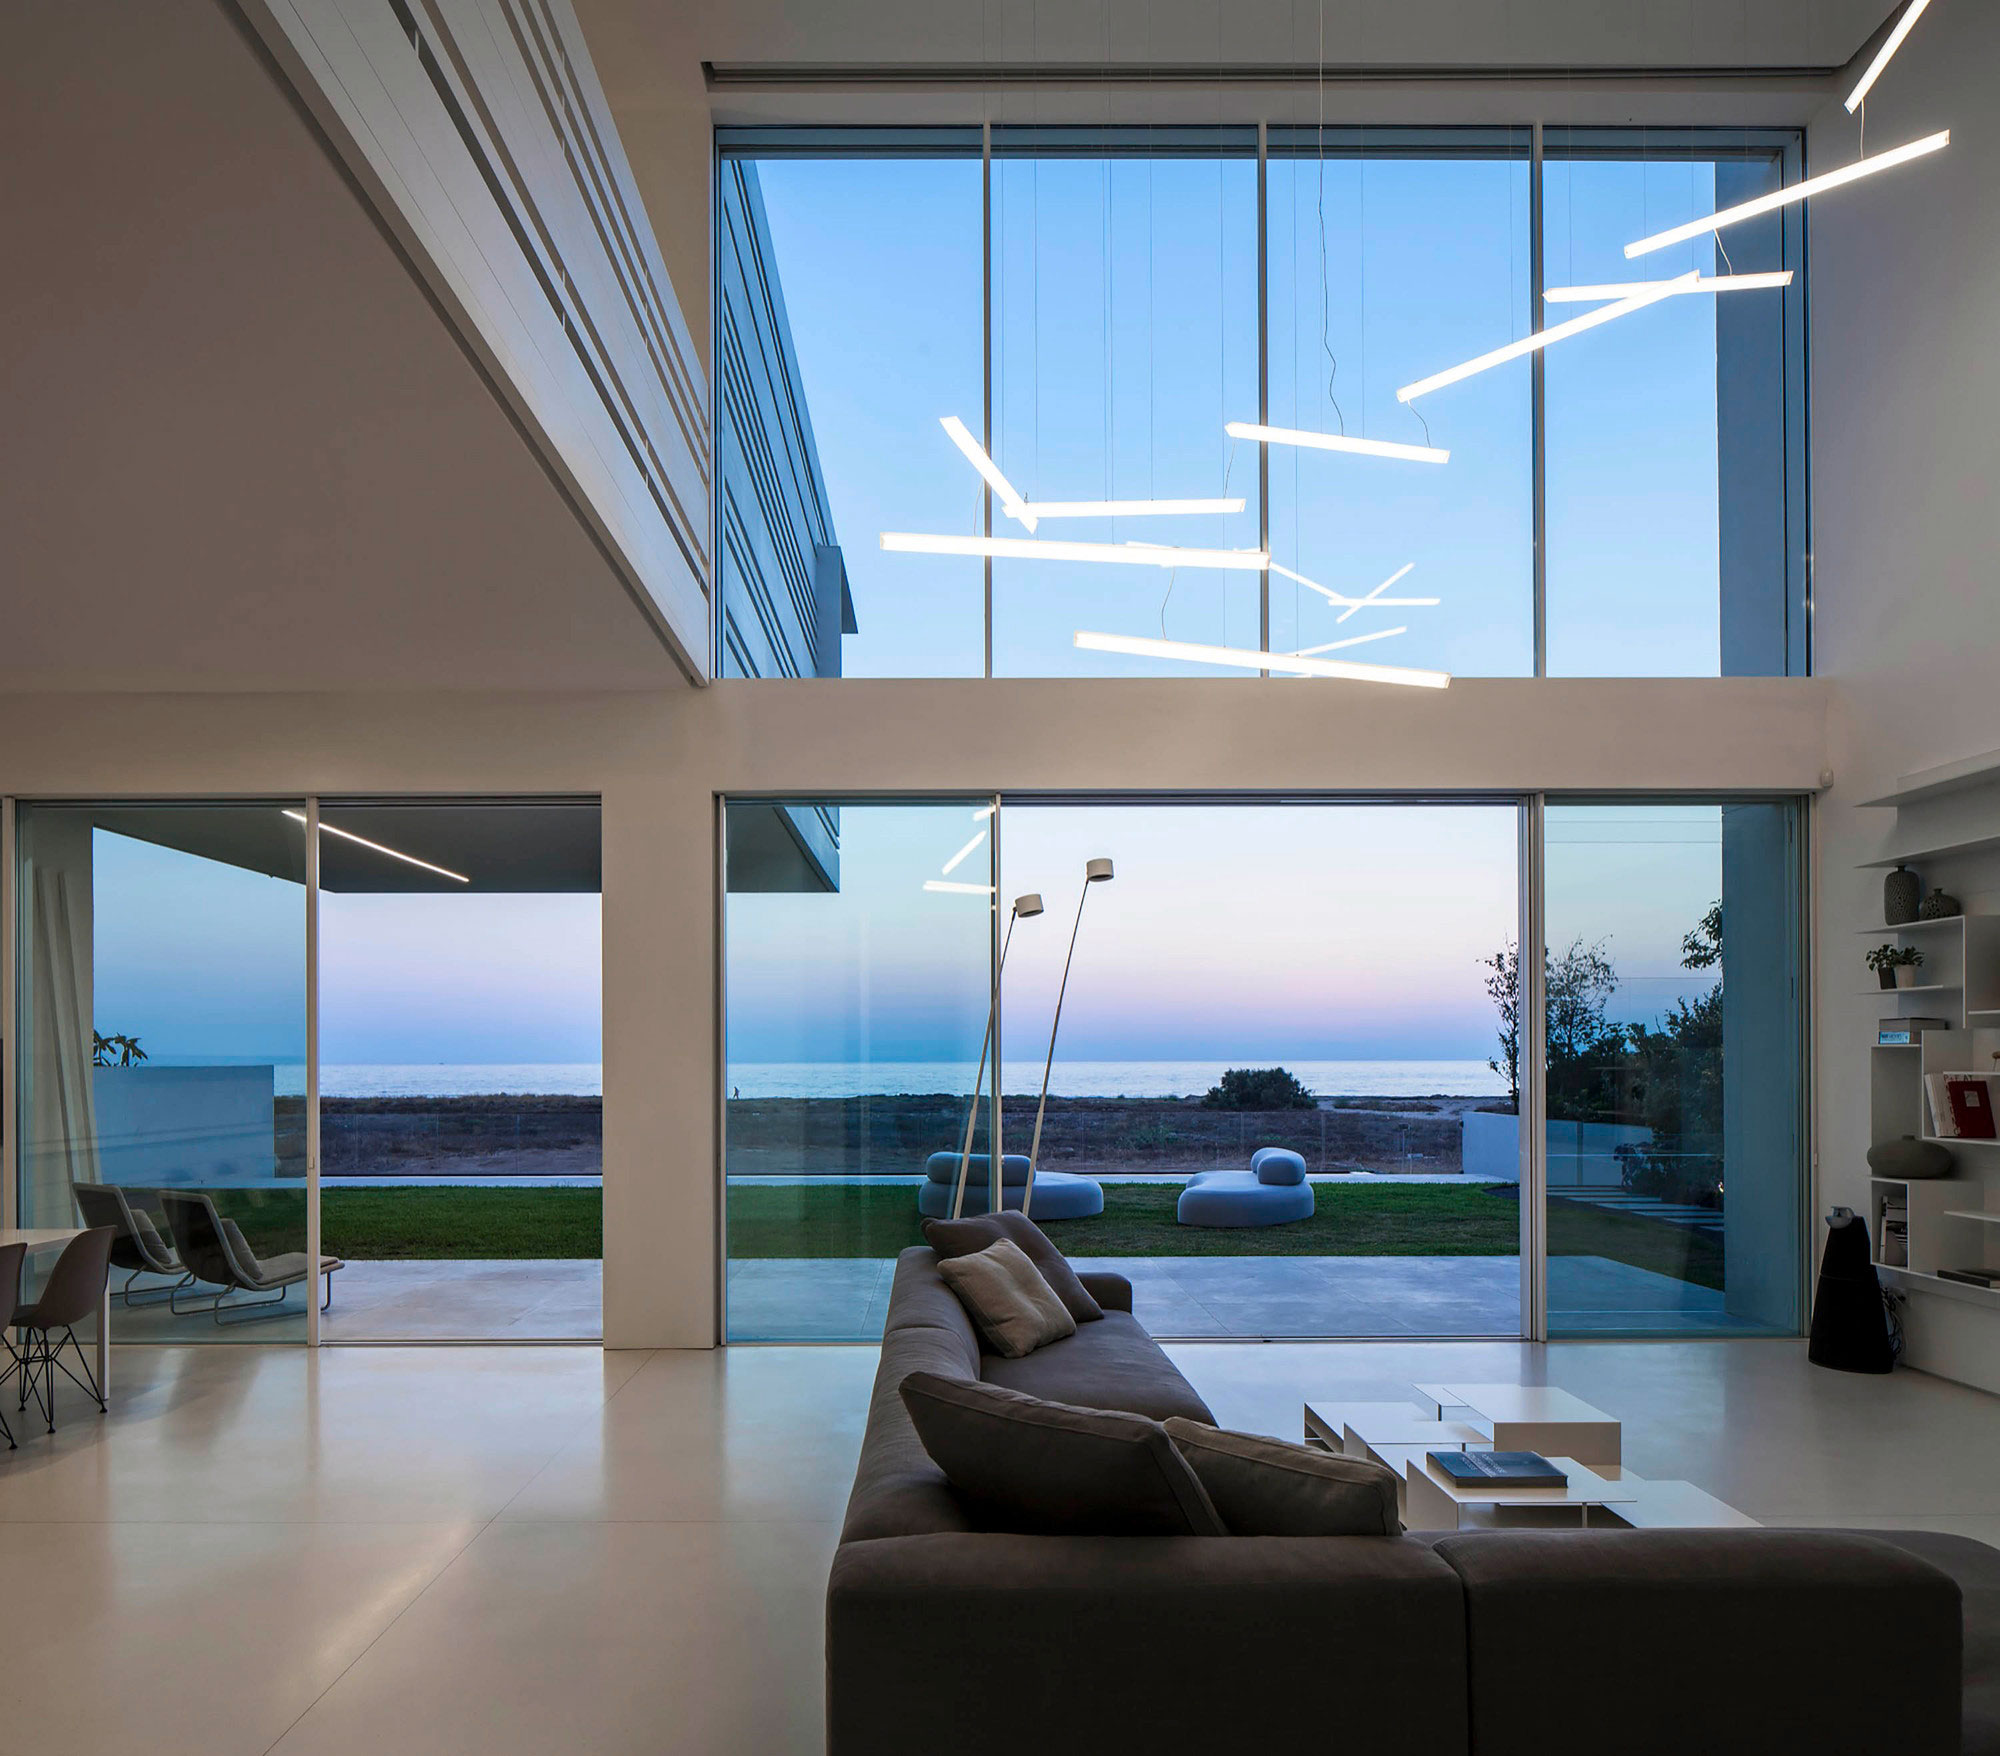 Luminous A House by the Sea home with Mediterranean Sea views by Pitsou Kedem Architects-20